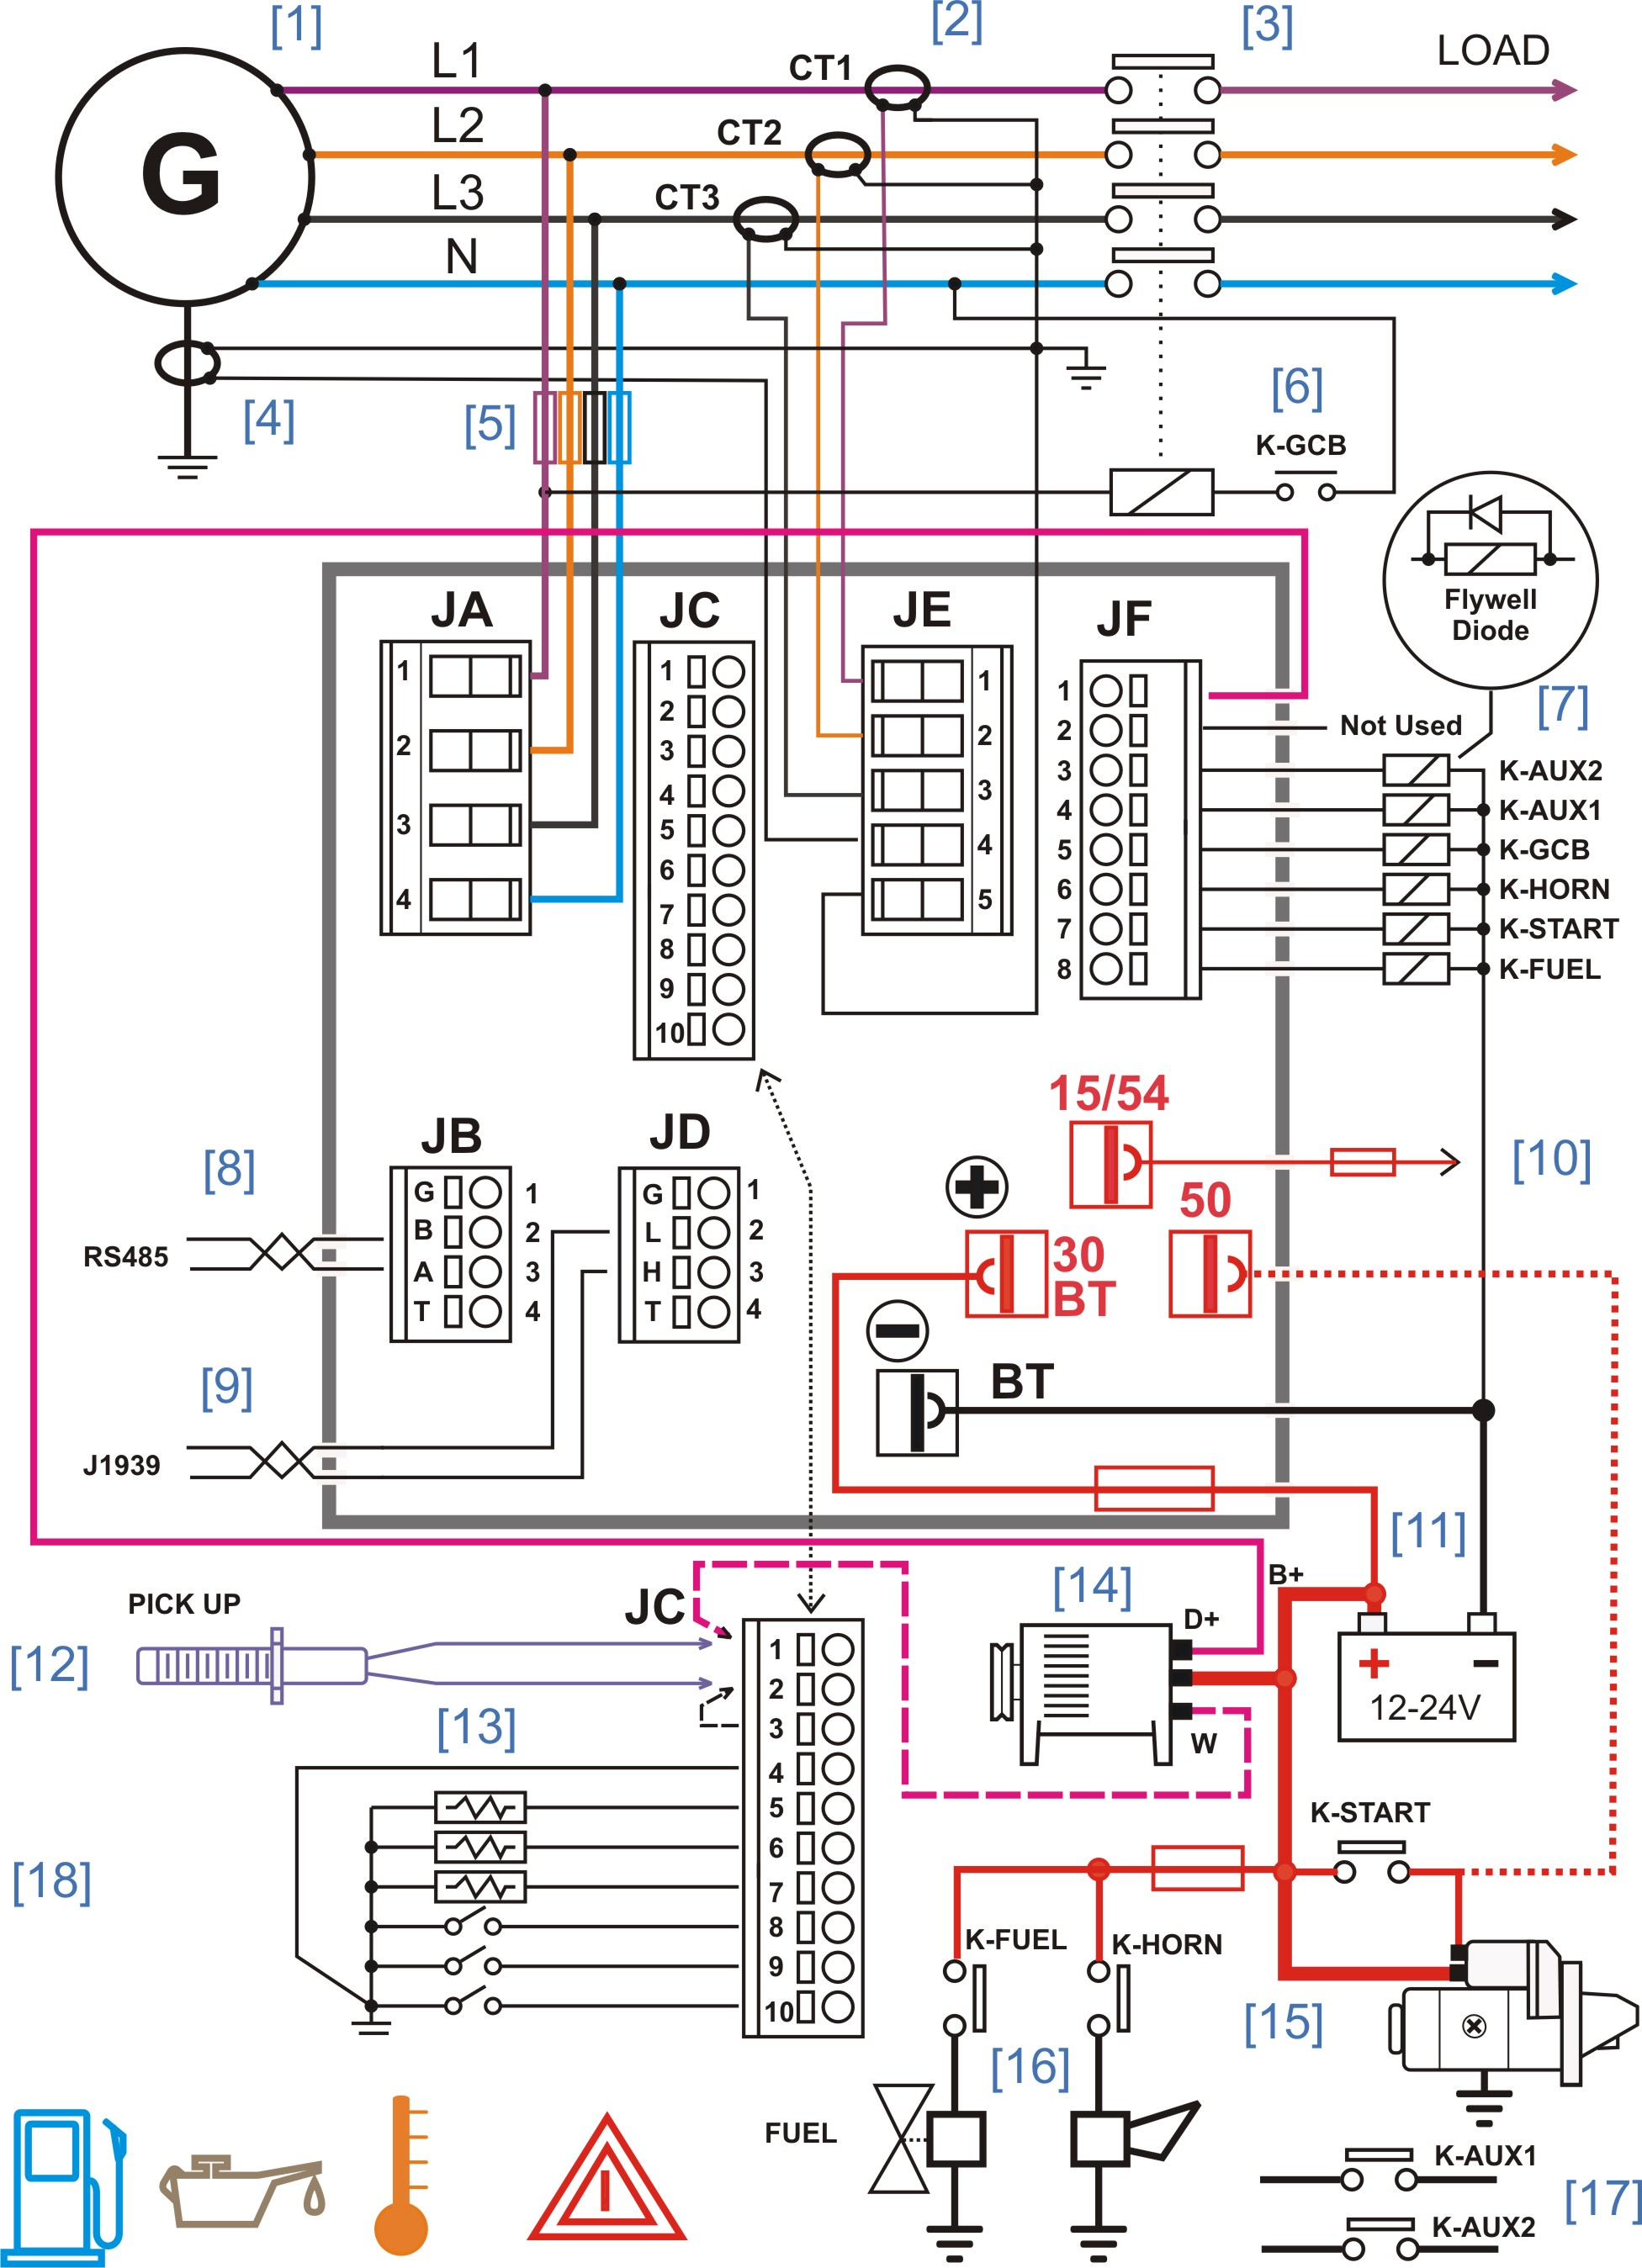 wiring diagram pdf wiring image wiring diagram saab 9 3 wiring diagram pdf electric motor relay wiring diagram on wiring diagram pdf